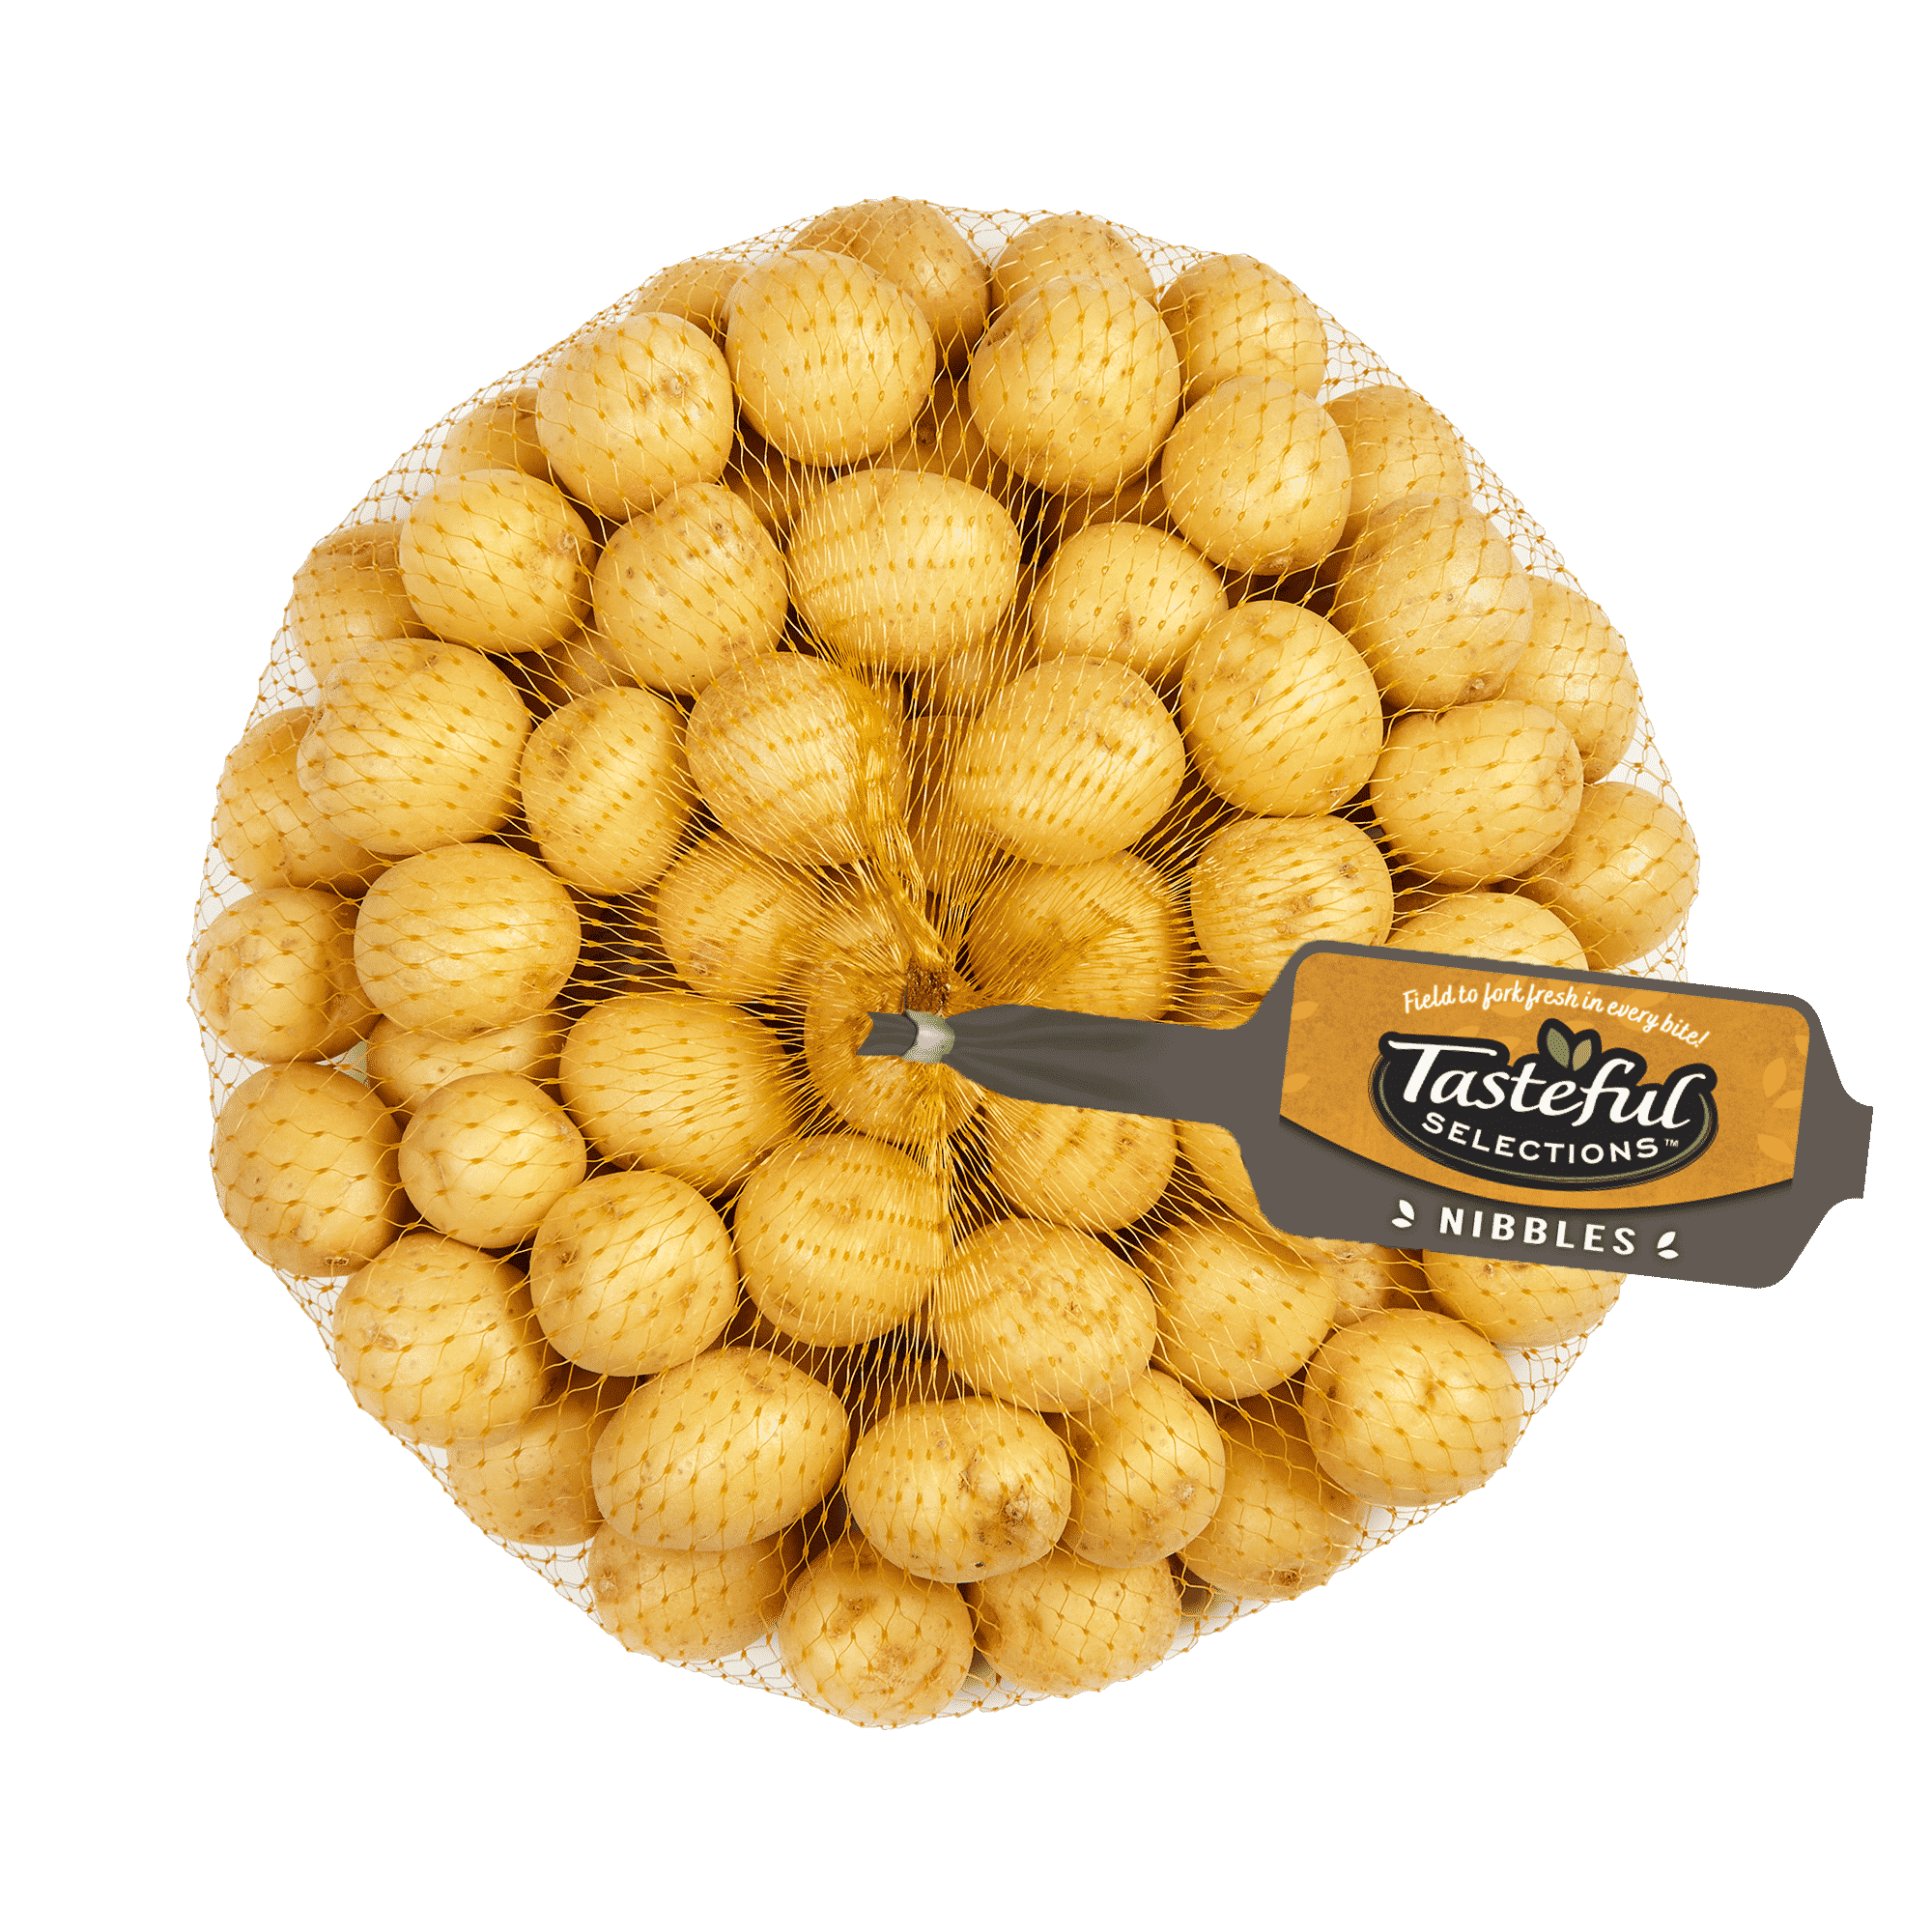 Tasteful Selections Honey Gold Bite-Size Potatoes Mesh Nibbles